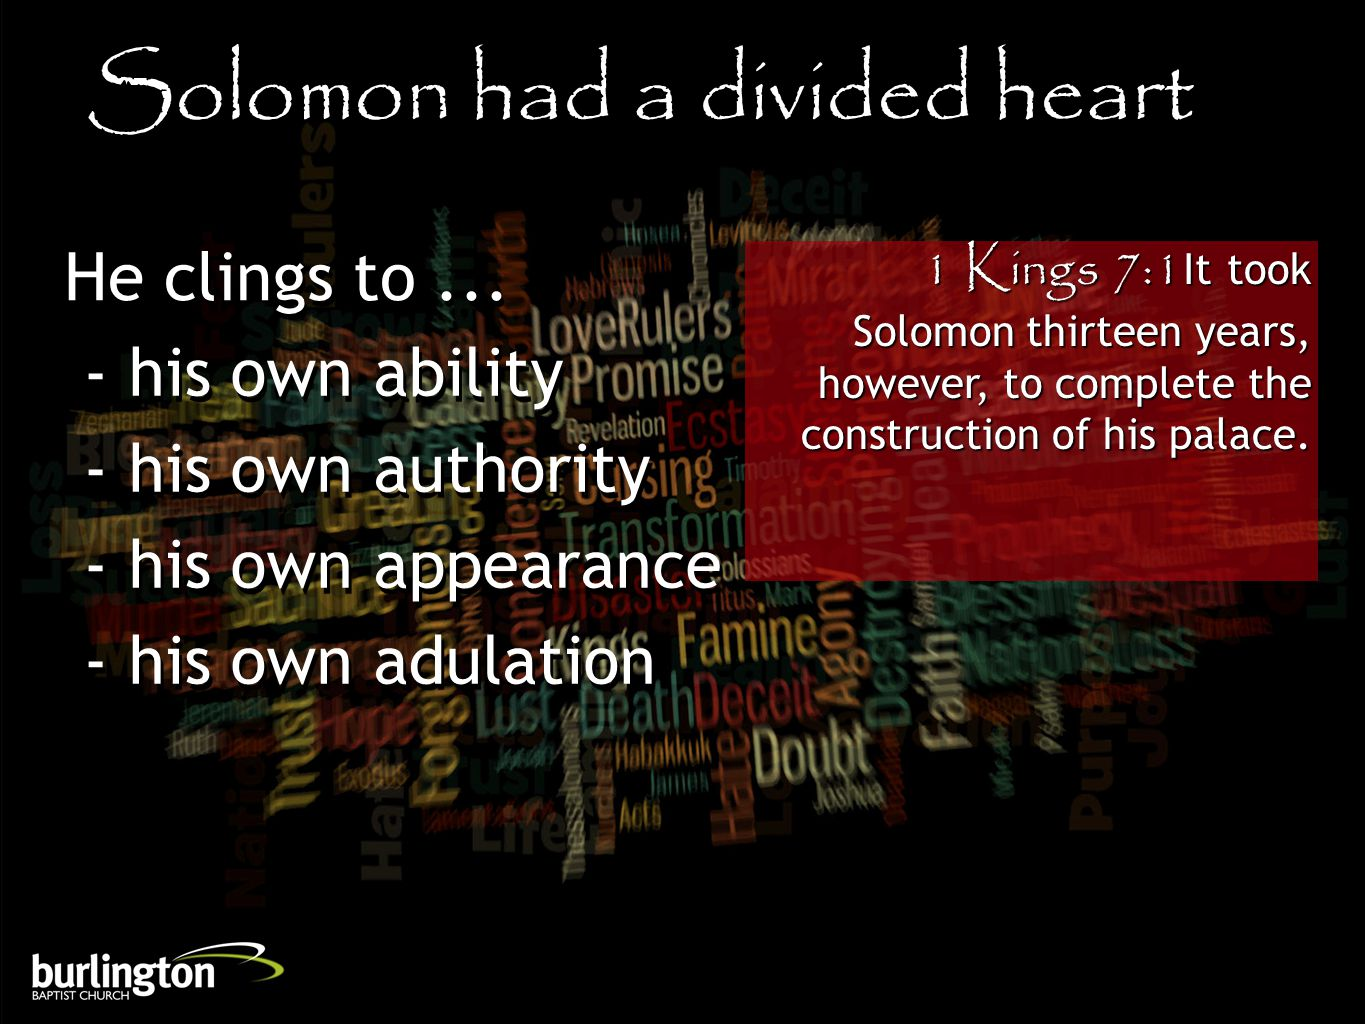 1 Kings 7:1It took Solomon thirteen years, however, to complete the construction of his palace. Solomon had a divided heart He clings to... - his own